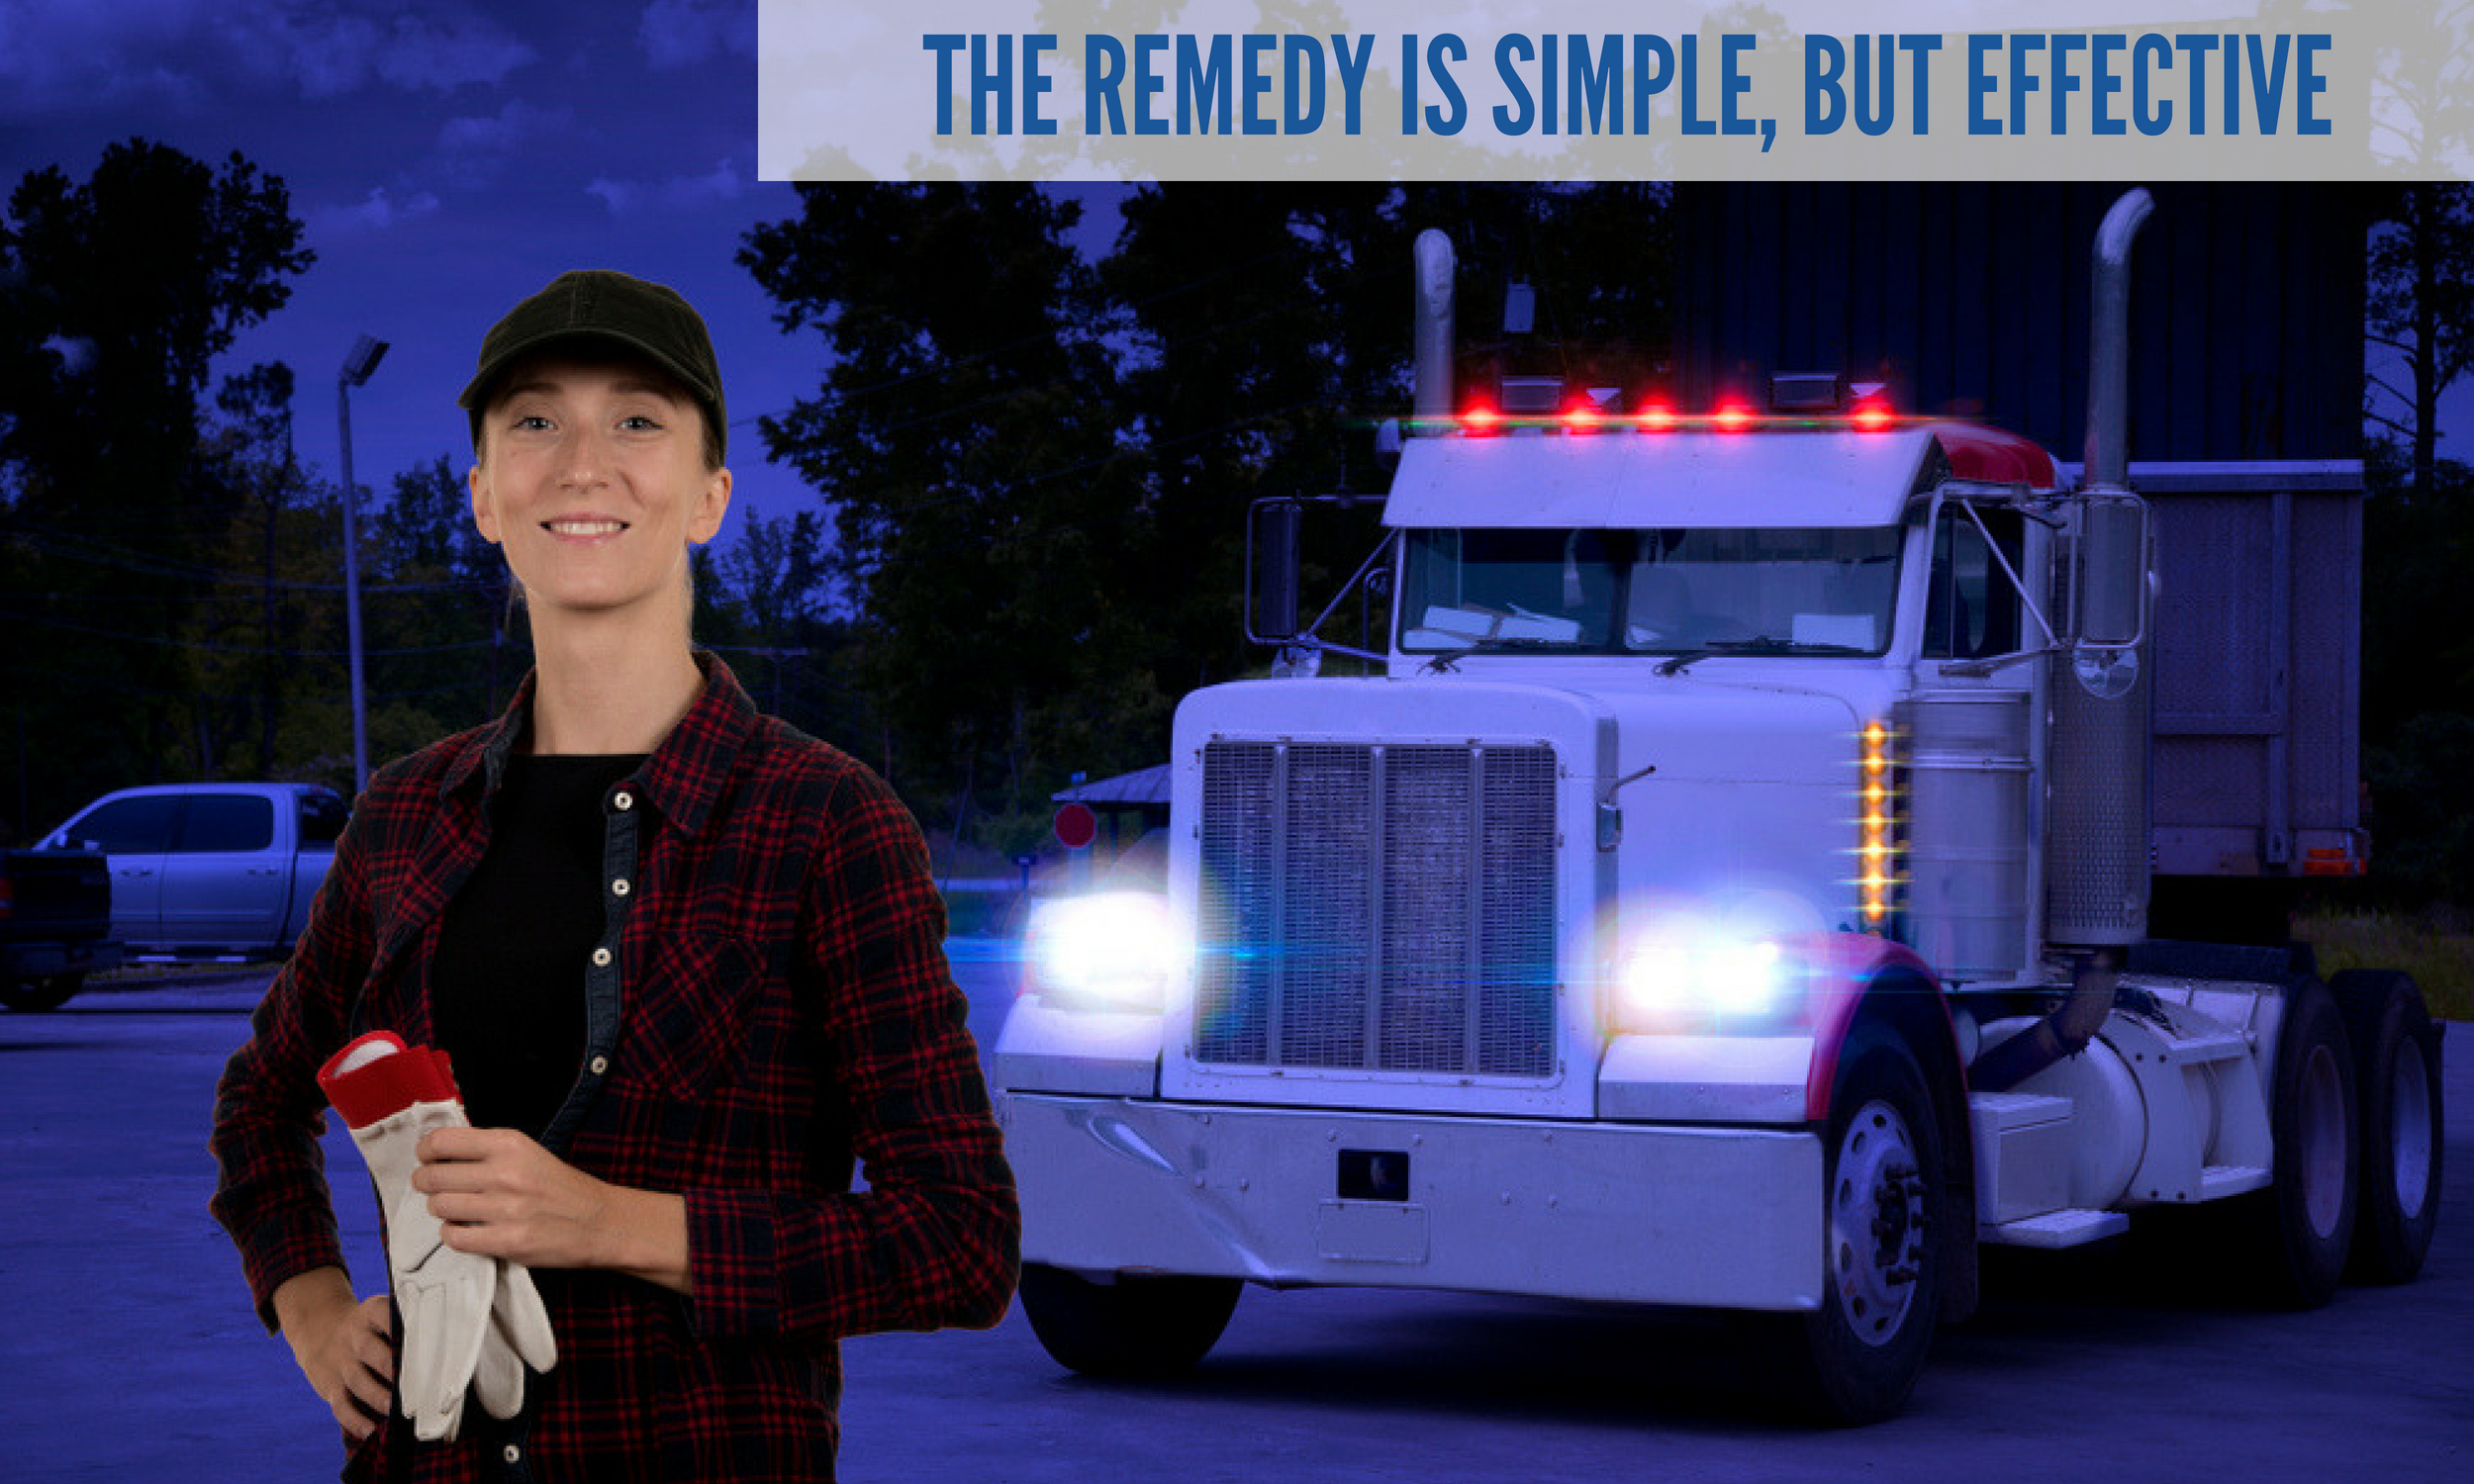 All professionals, including truck drivers need money. But that's not the only reason they show up to work everyday.